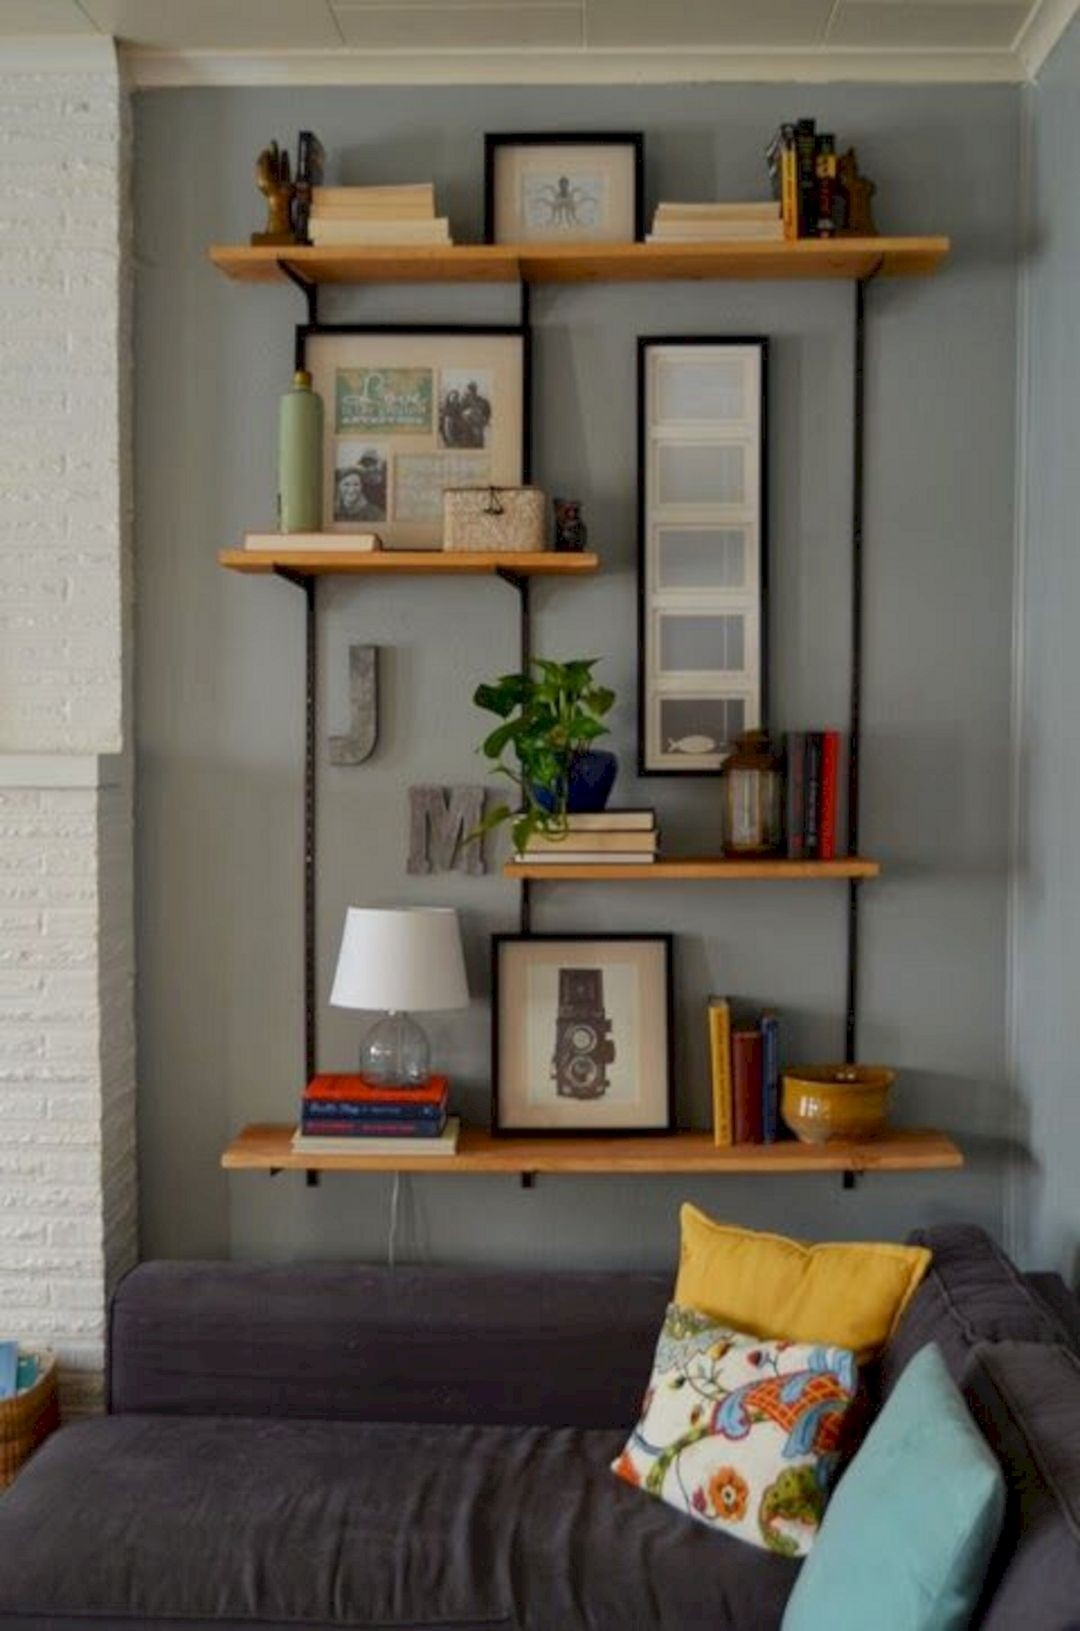 Charmant Wall Mounted Wood Shelves